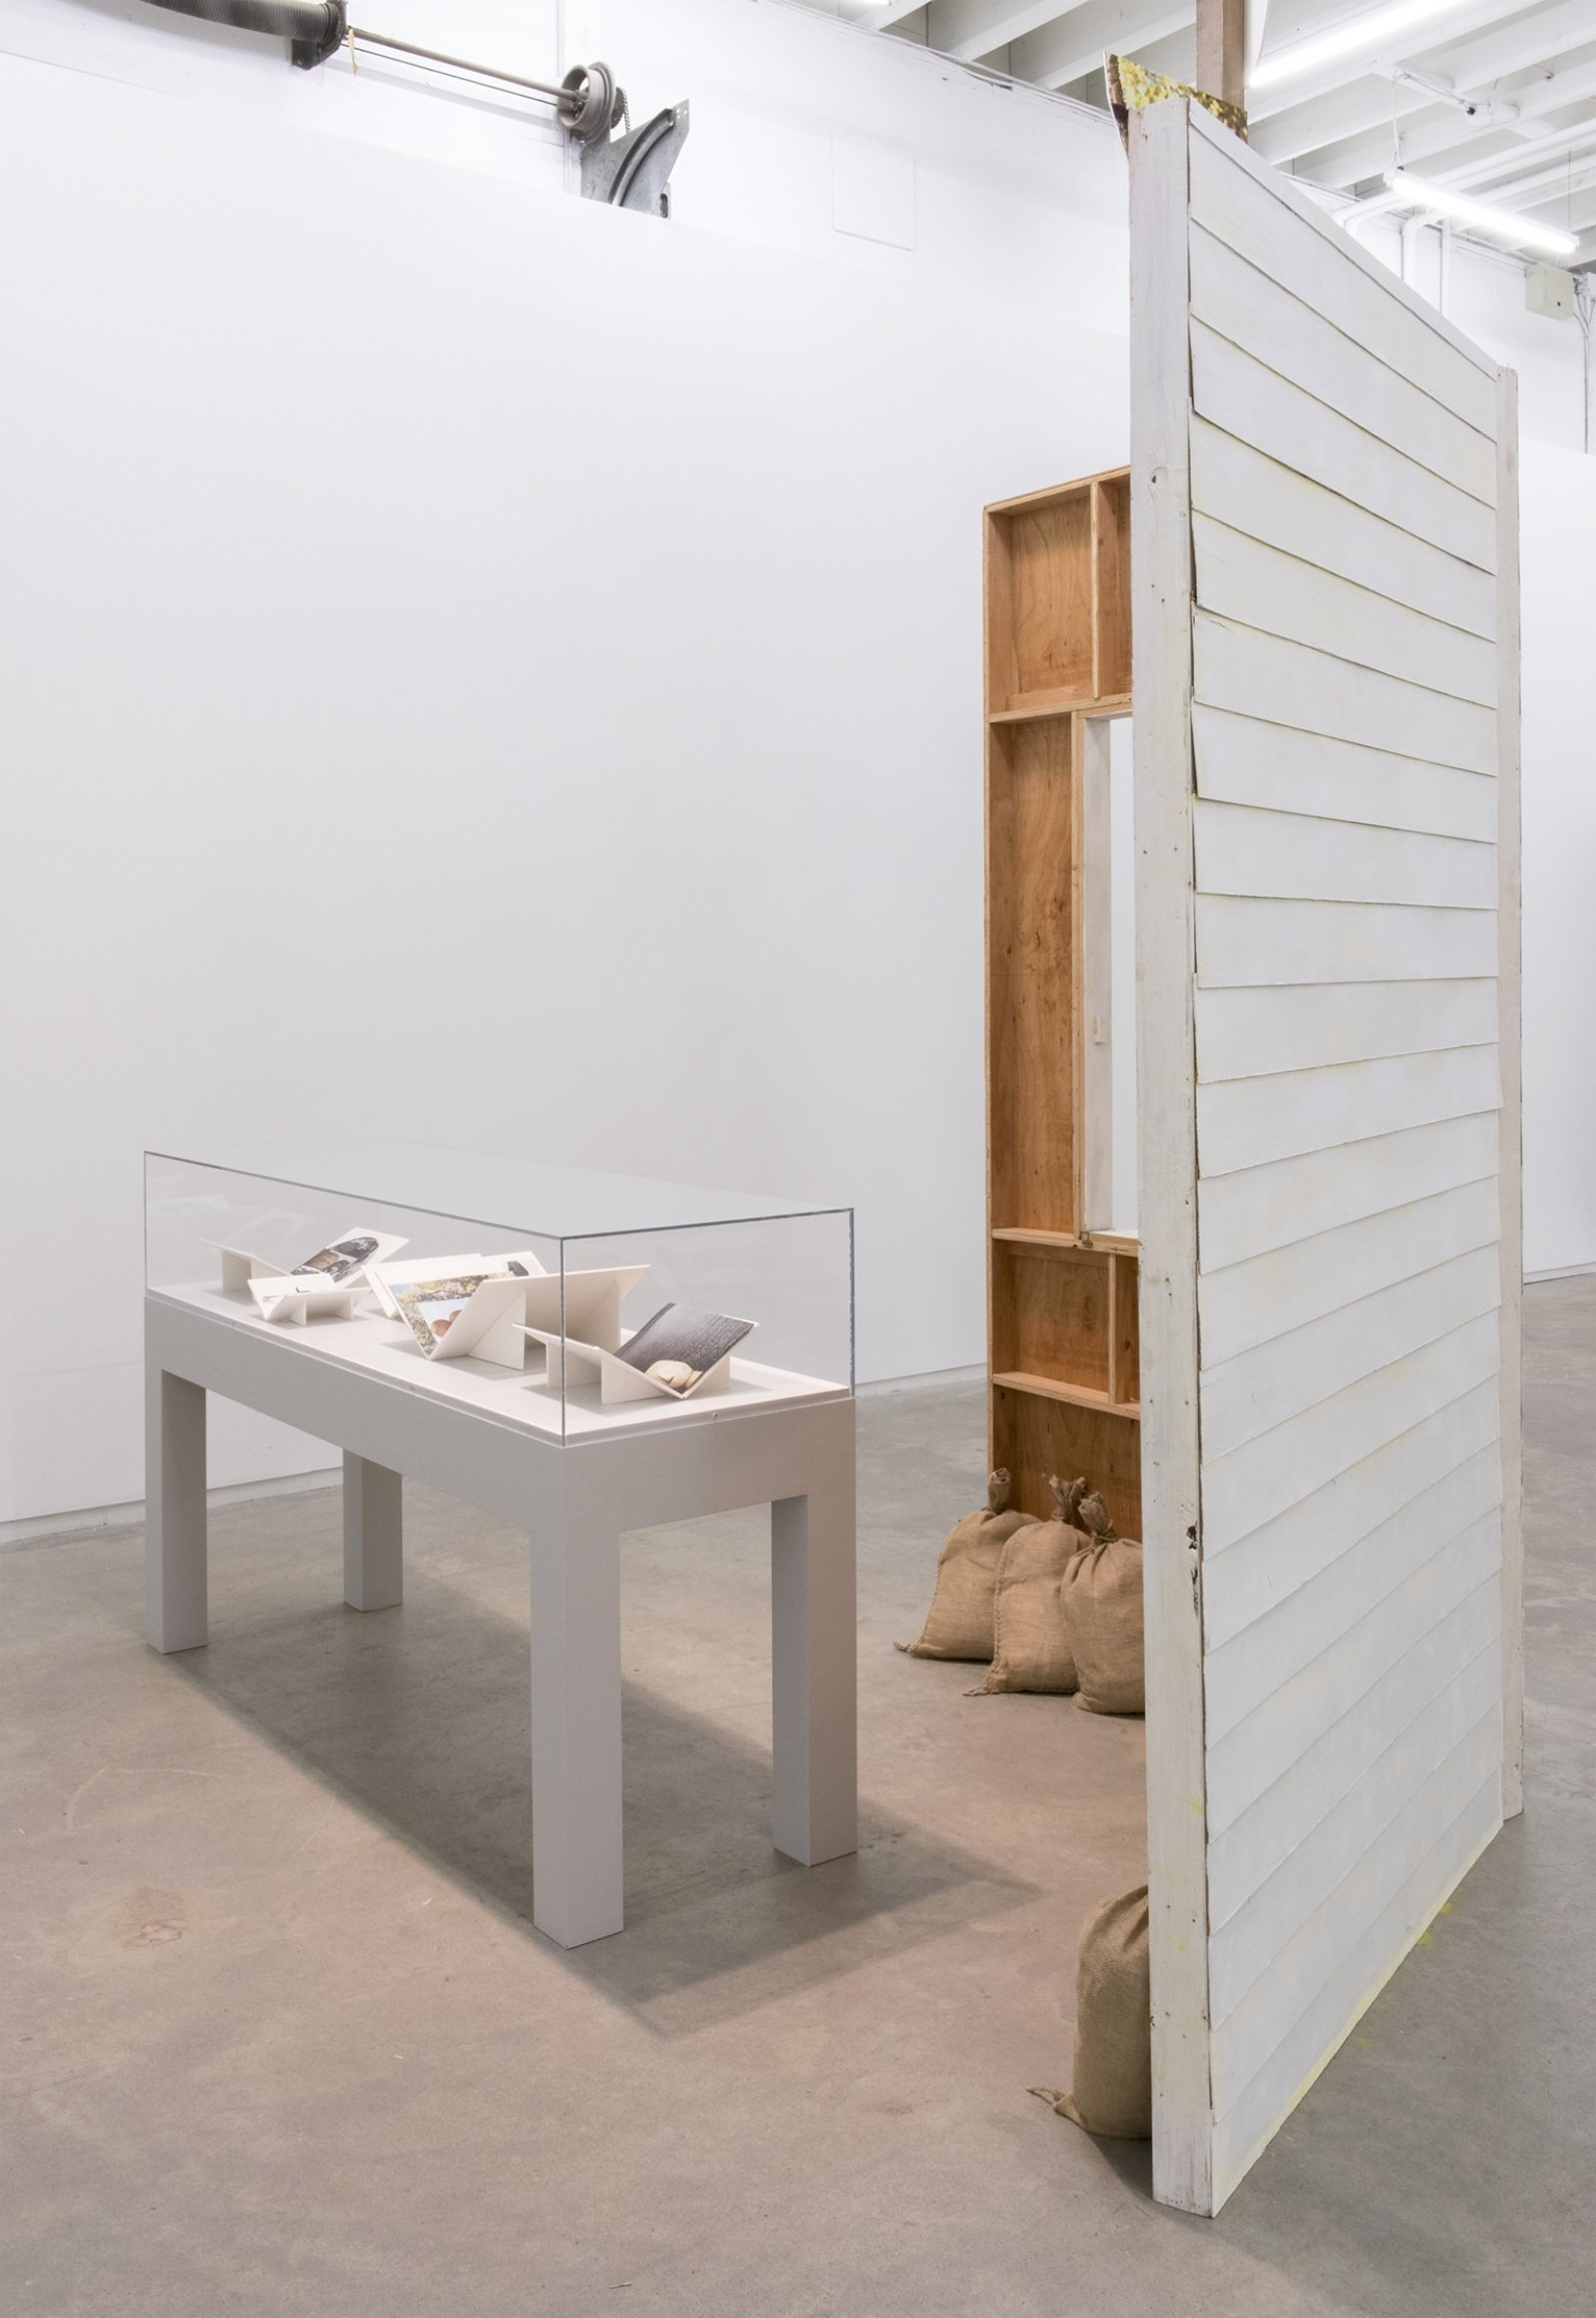 Geoffrey Farmer,Workbookswith When I got fired from that Beckett Play (Fountain),2014, vitrine with 5 cut-outs collaged on foamcore, 2 wooden wall façades, paint, window, sandbags, framed cut-outs and ink mounted on paper, dimensions variable